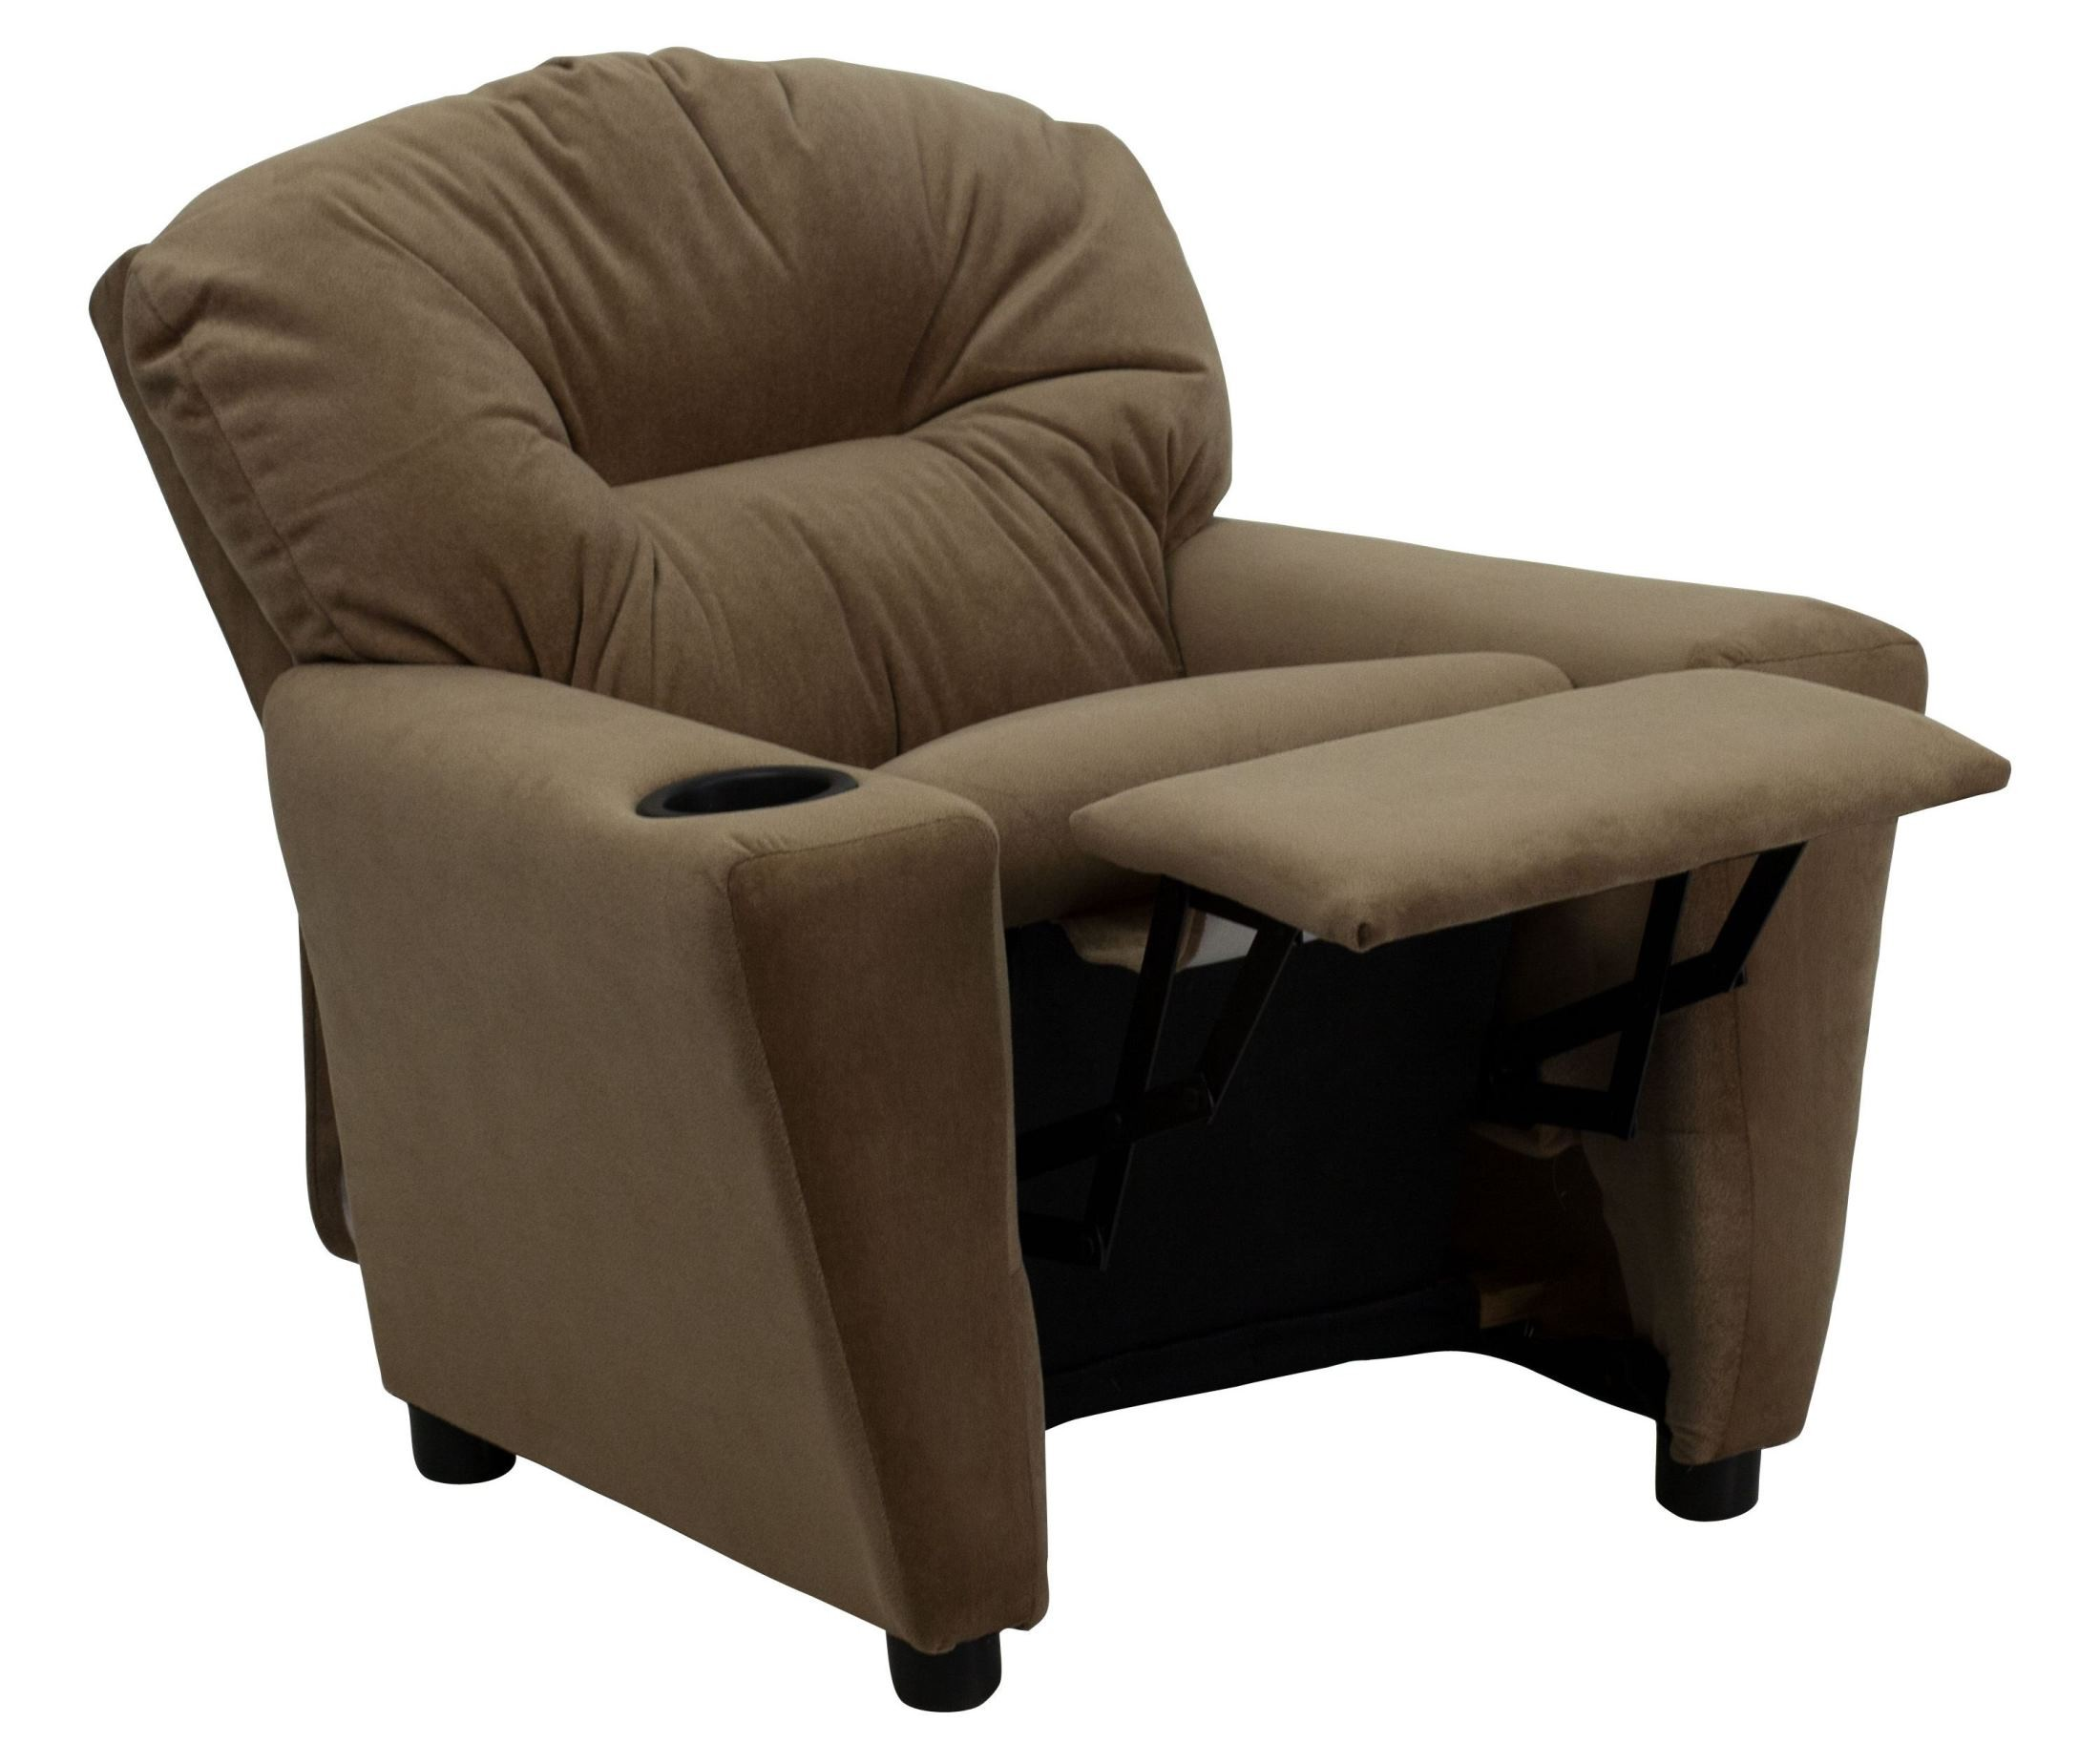 Brown Microfiber Kids Recliner With Cup Holder From